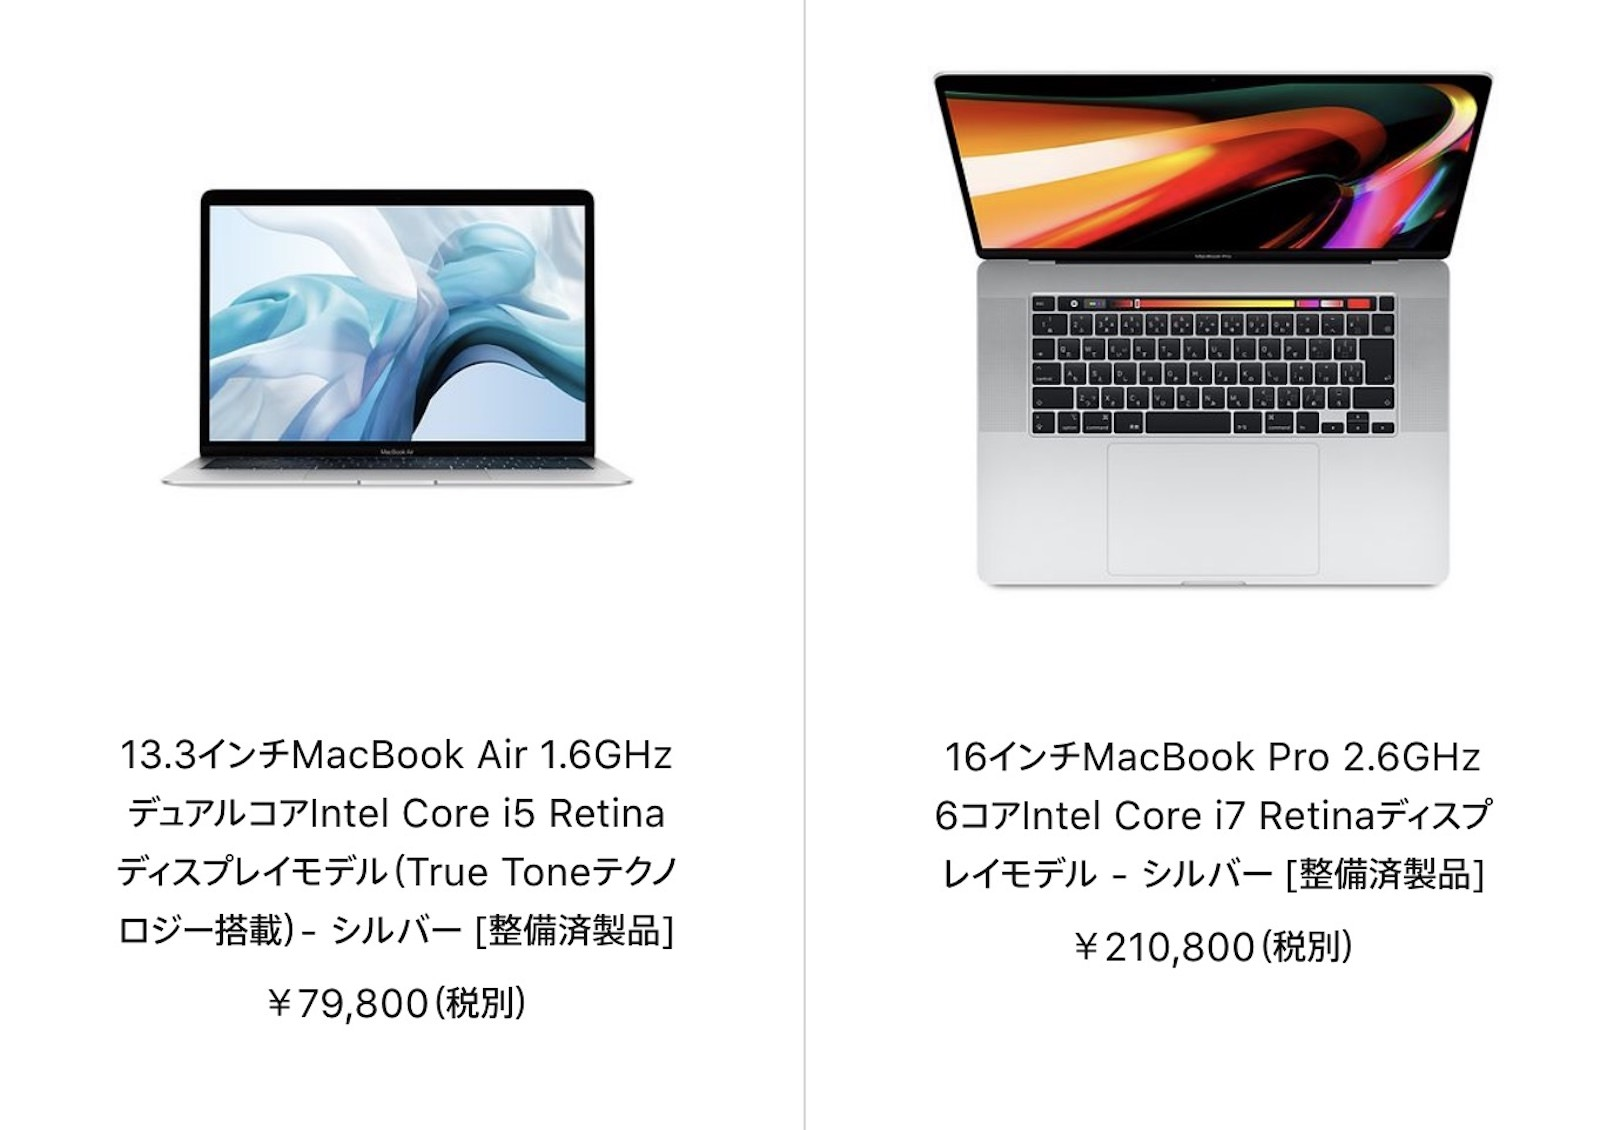 MacBook Air and MacBook Pro 16inch